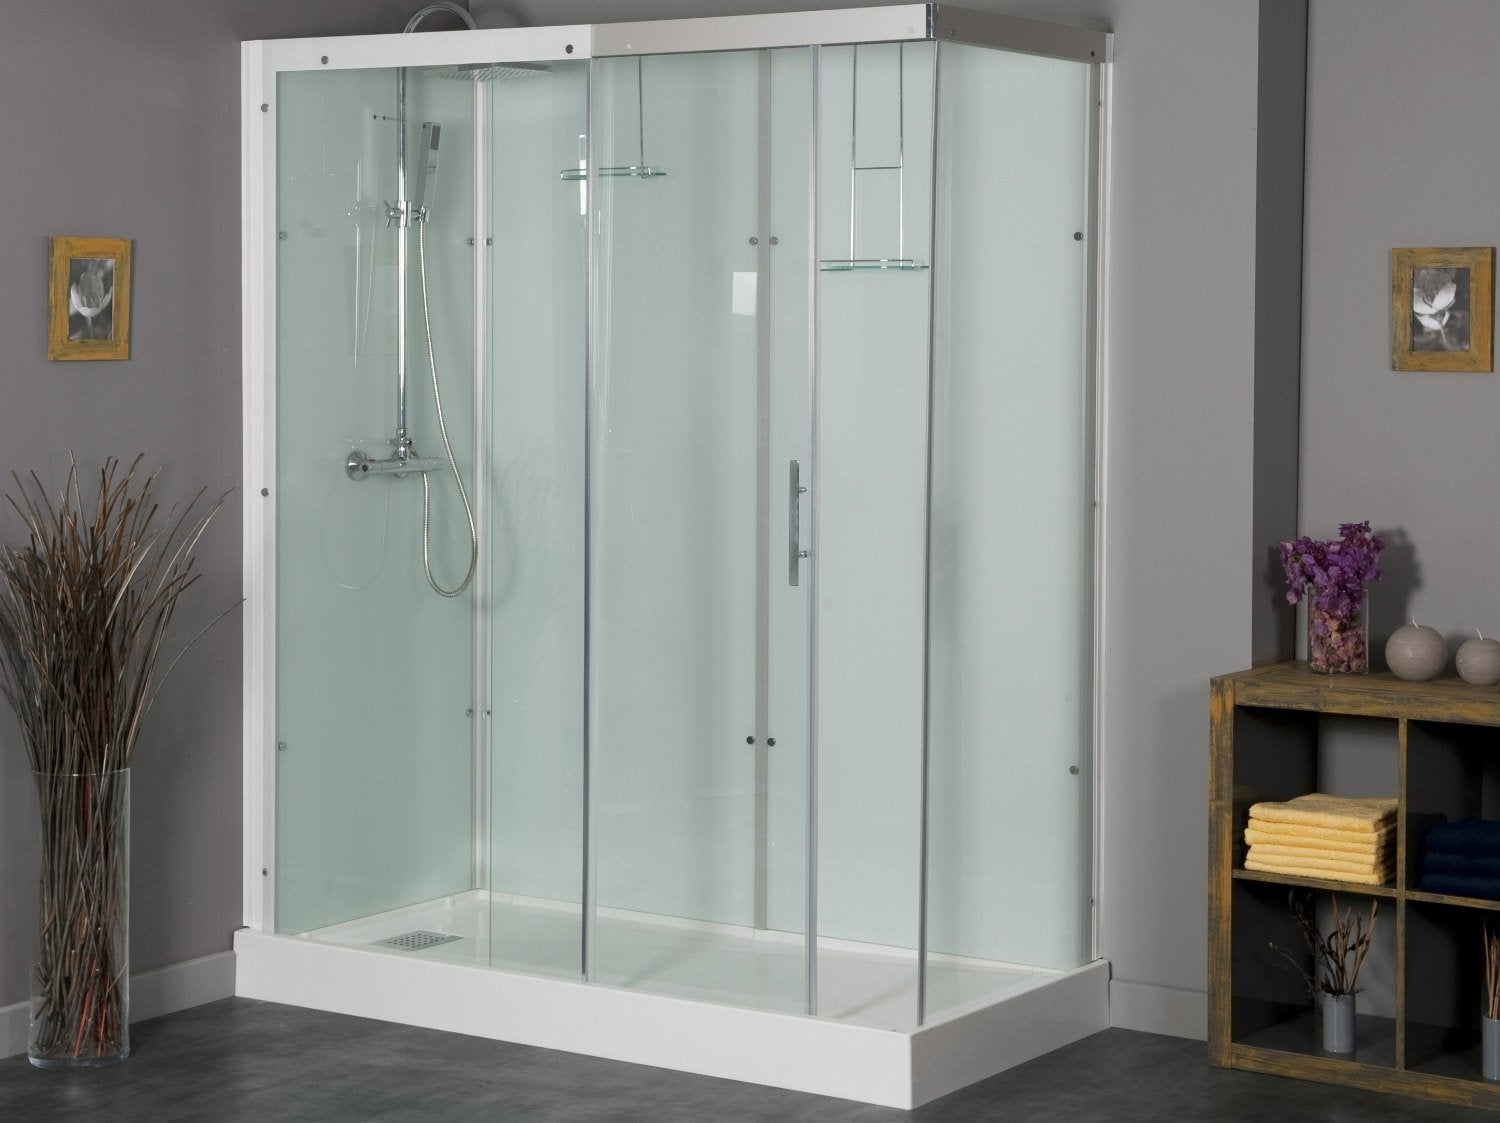 Comment installer une cabine de douche leroy merlin - Comment installer une cabine de douche ...